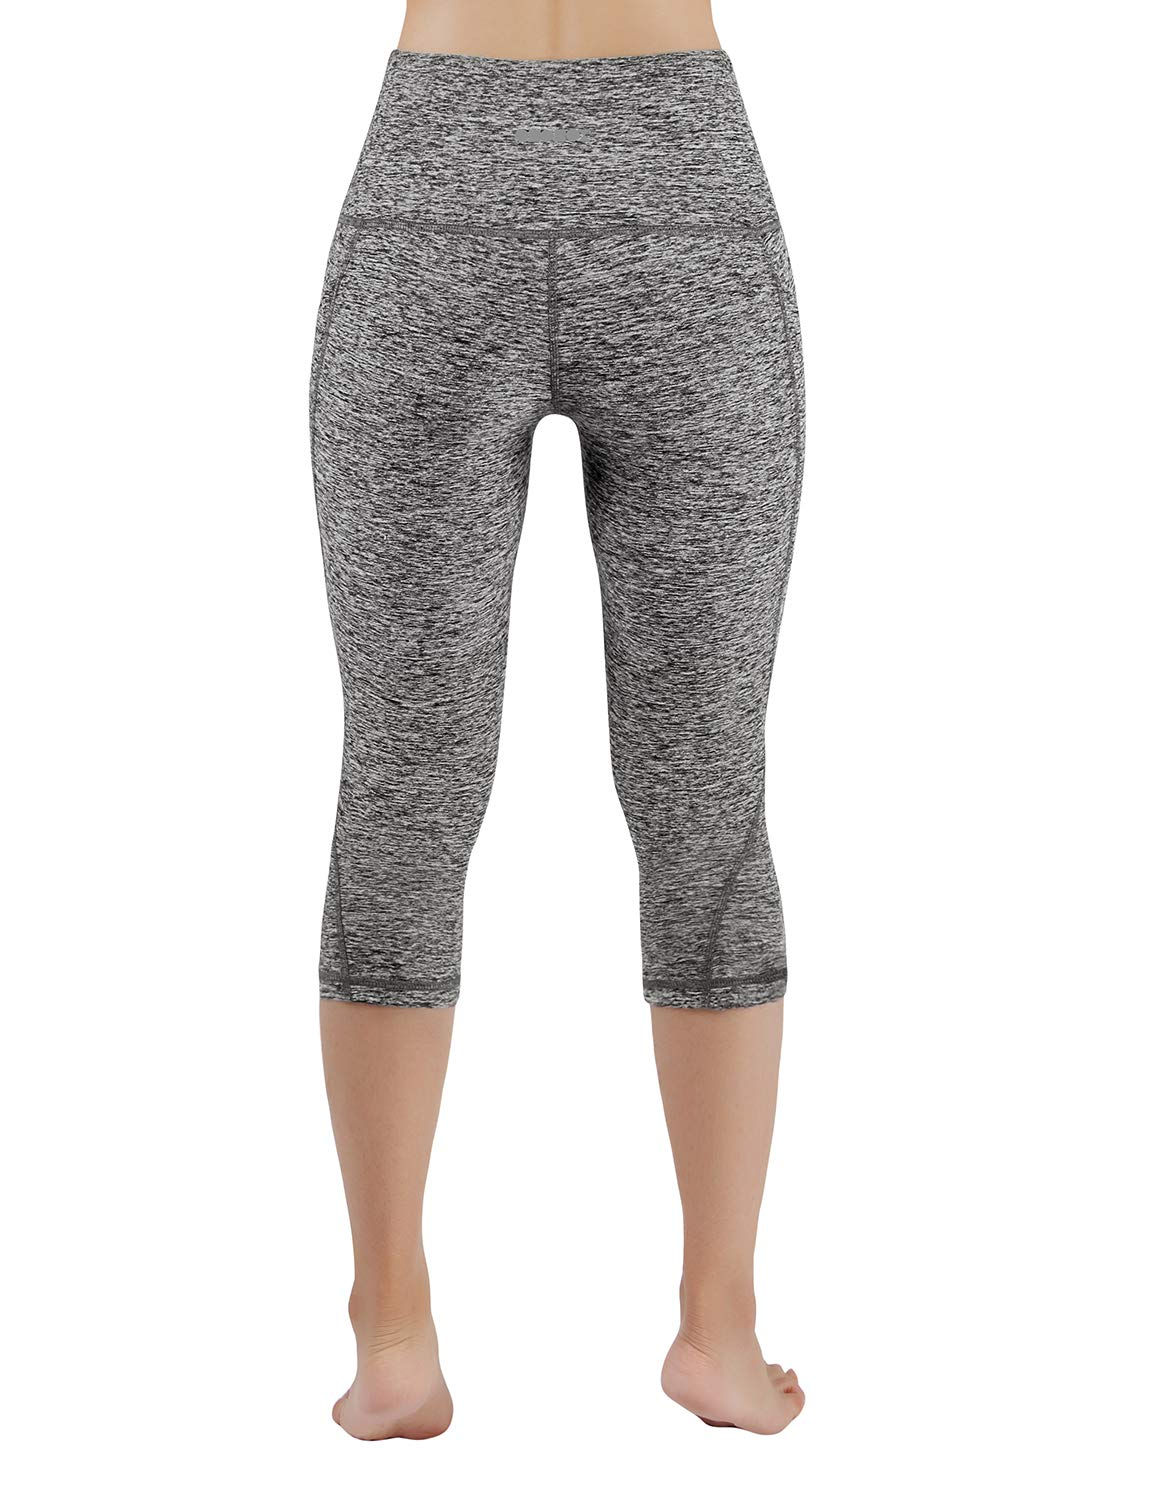 ODODOS High Waist Out Pocket Yoga Capris Pants Tummy Control Workout Running 4 Way Stretch Yoga Leggings,GrayHeather,X-Small by ODODOS (Image #3)